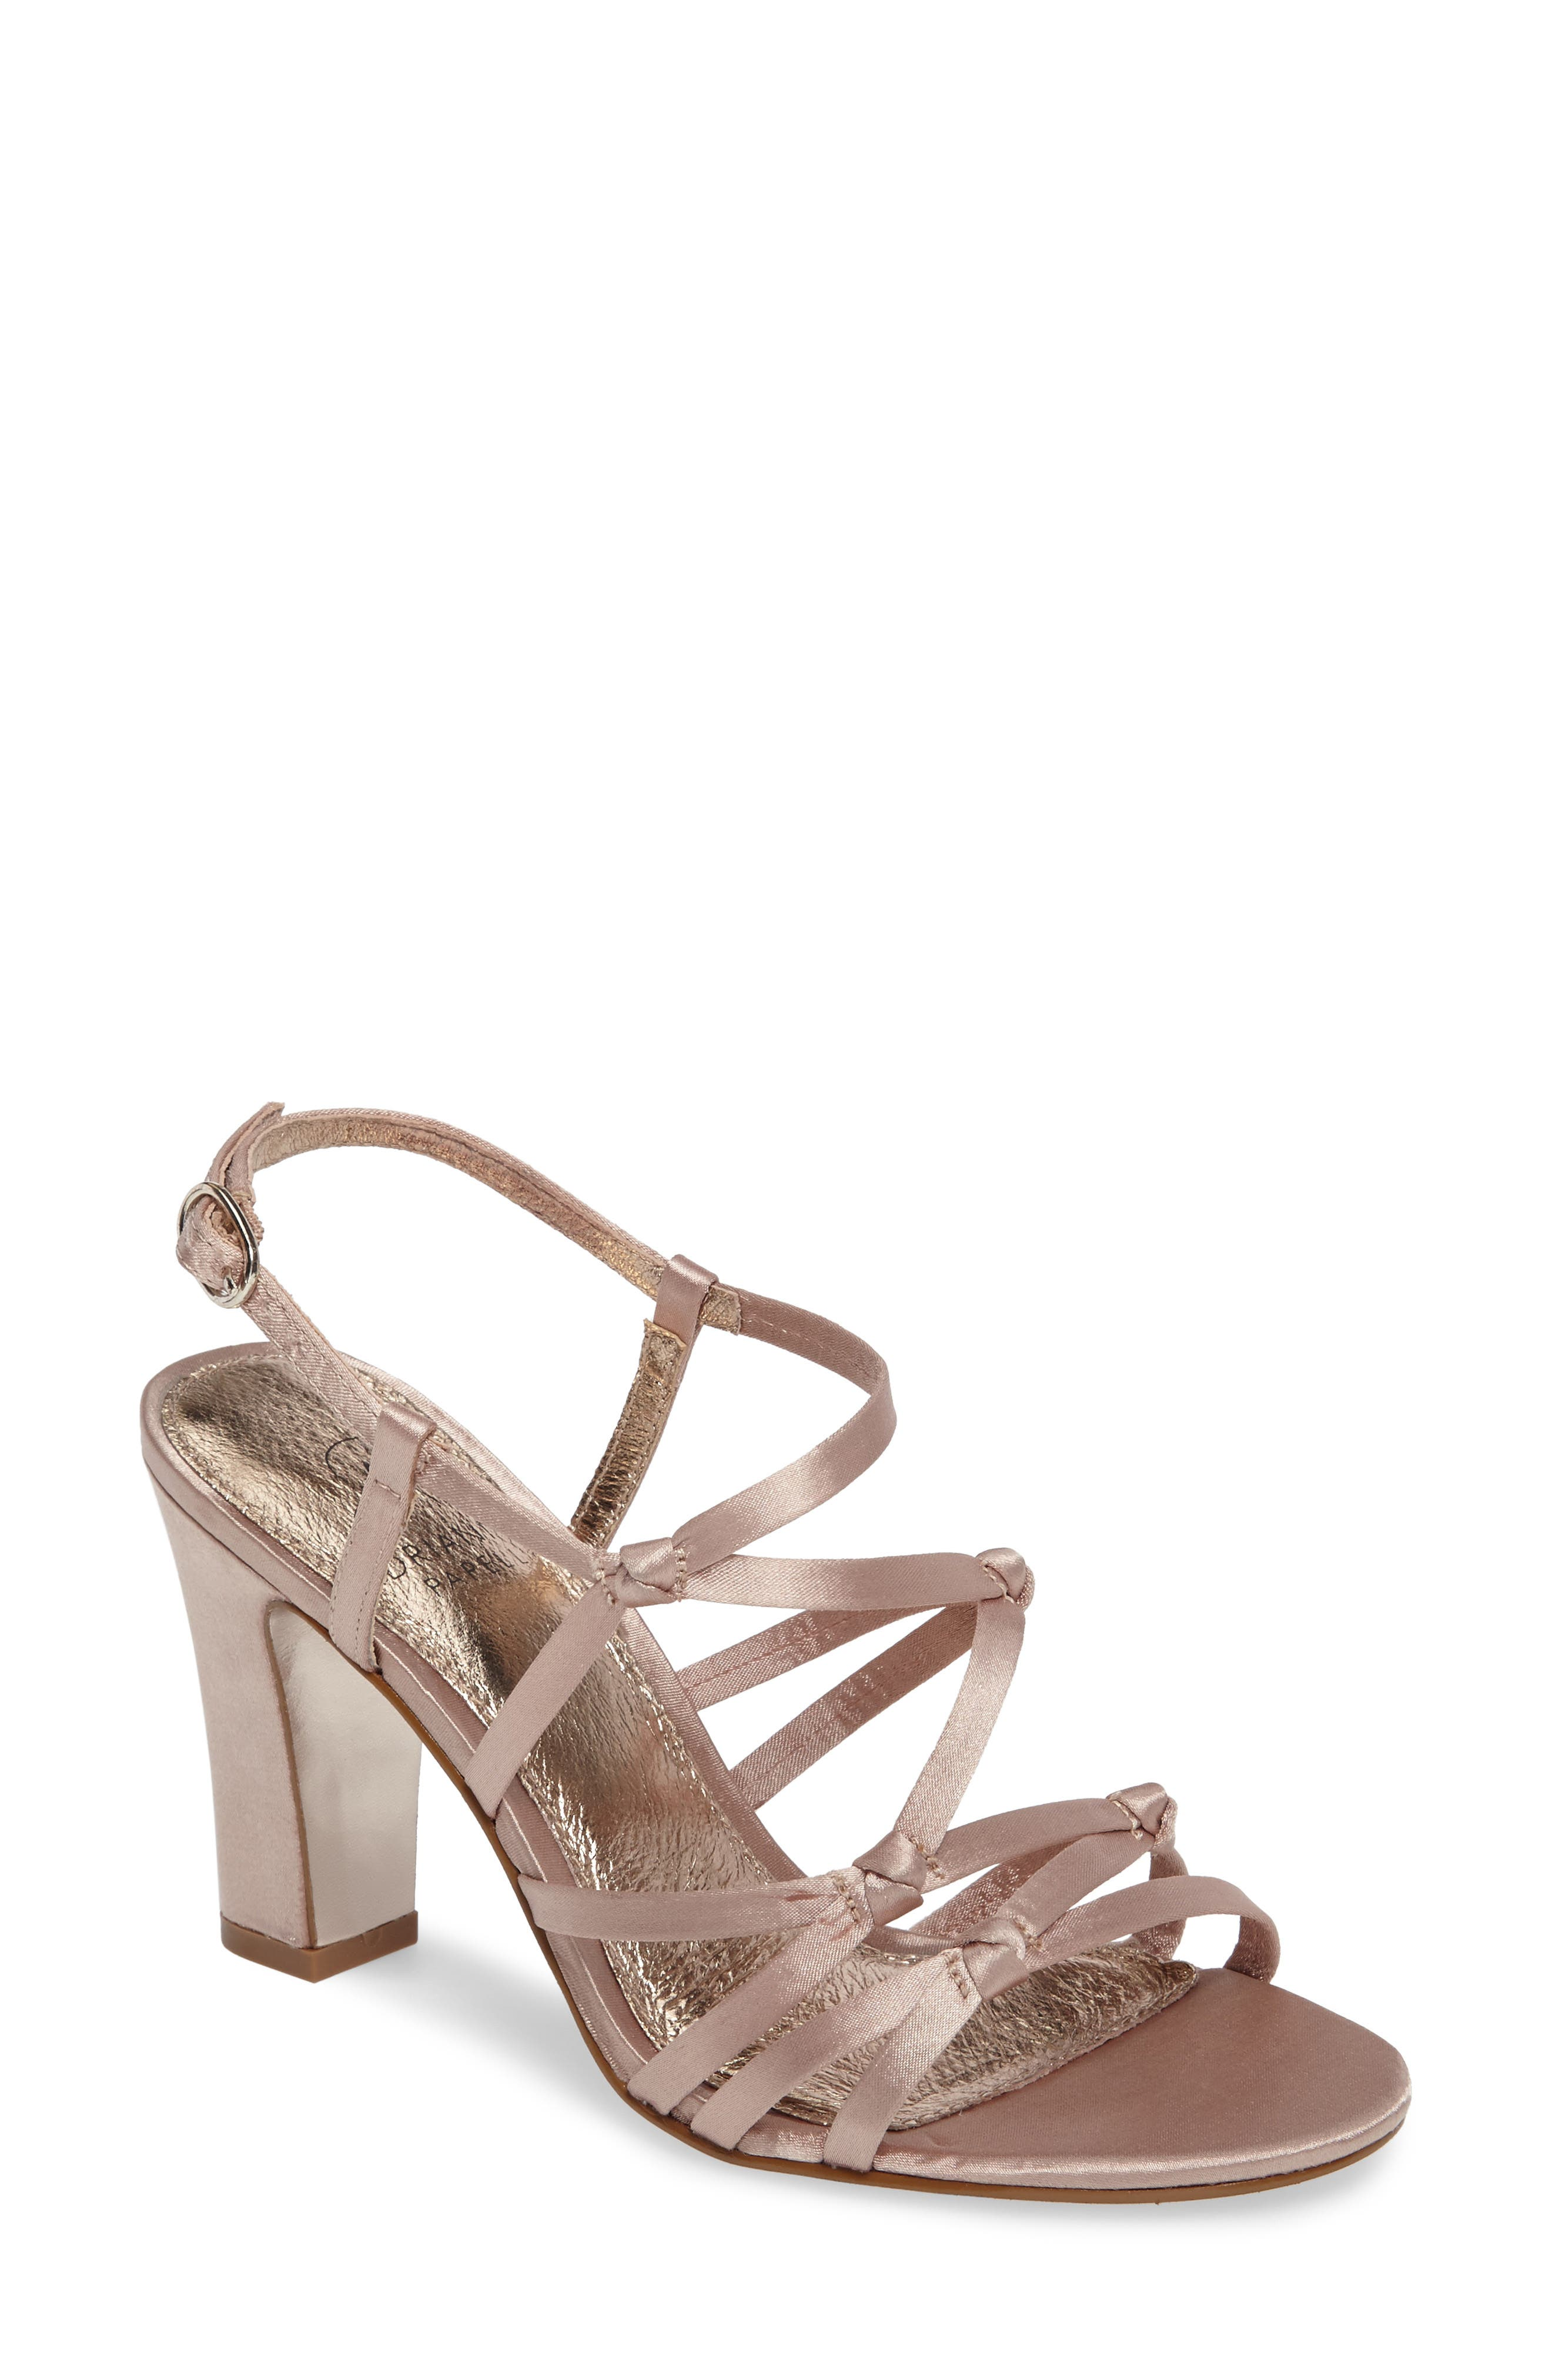 Alternate Image 1 Selected - Adrianna Papell Adelson Knotted Strappy Sandal (Women)